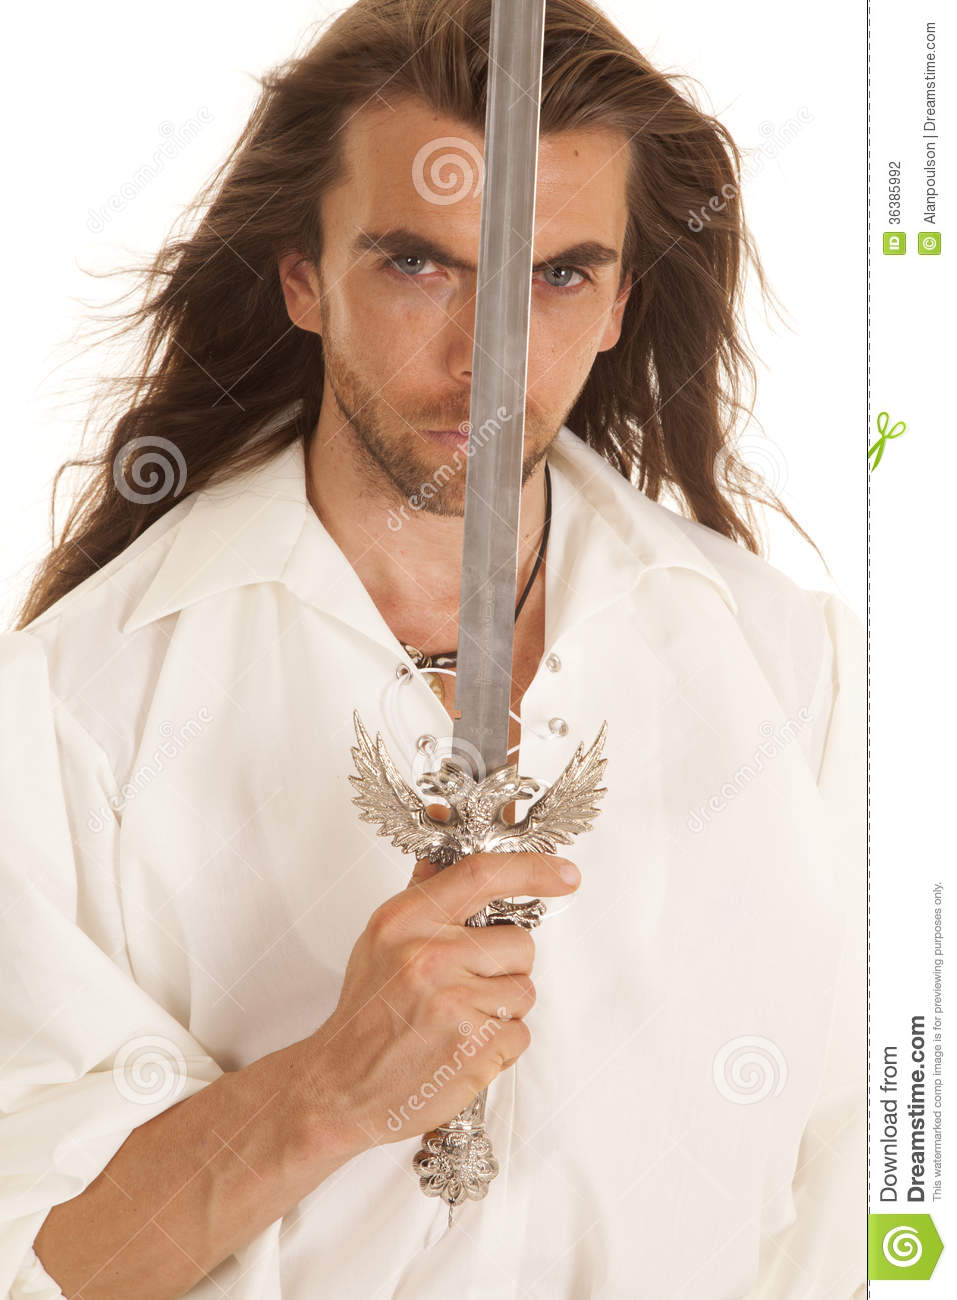 Man Long Hair Sword In Front Of Face Stock Photo Image Of Defense